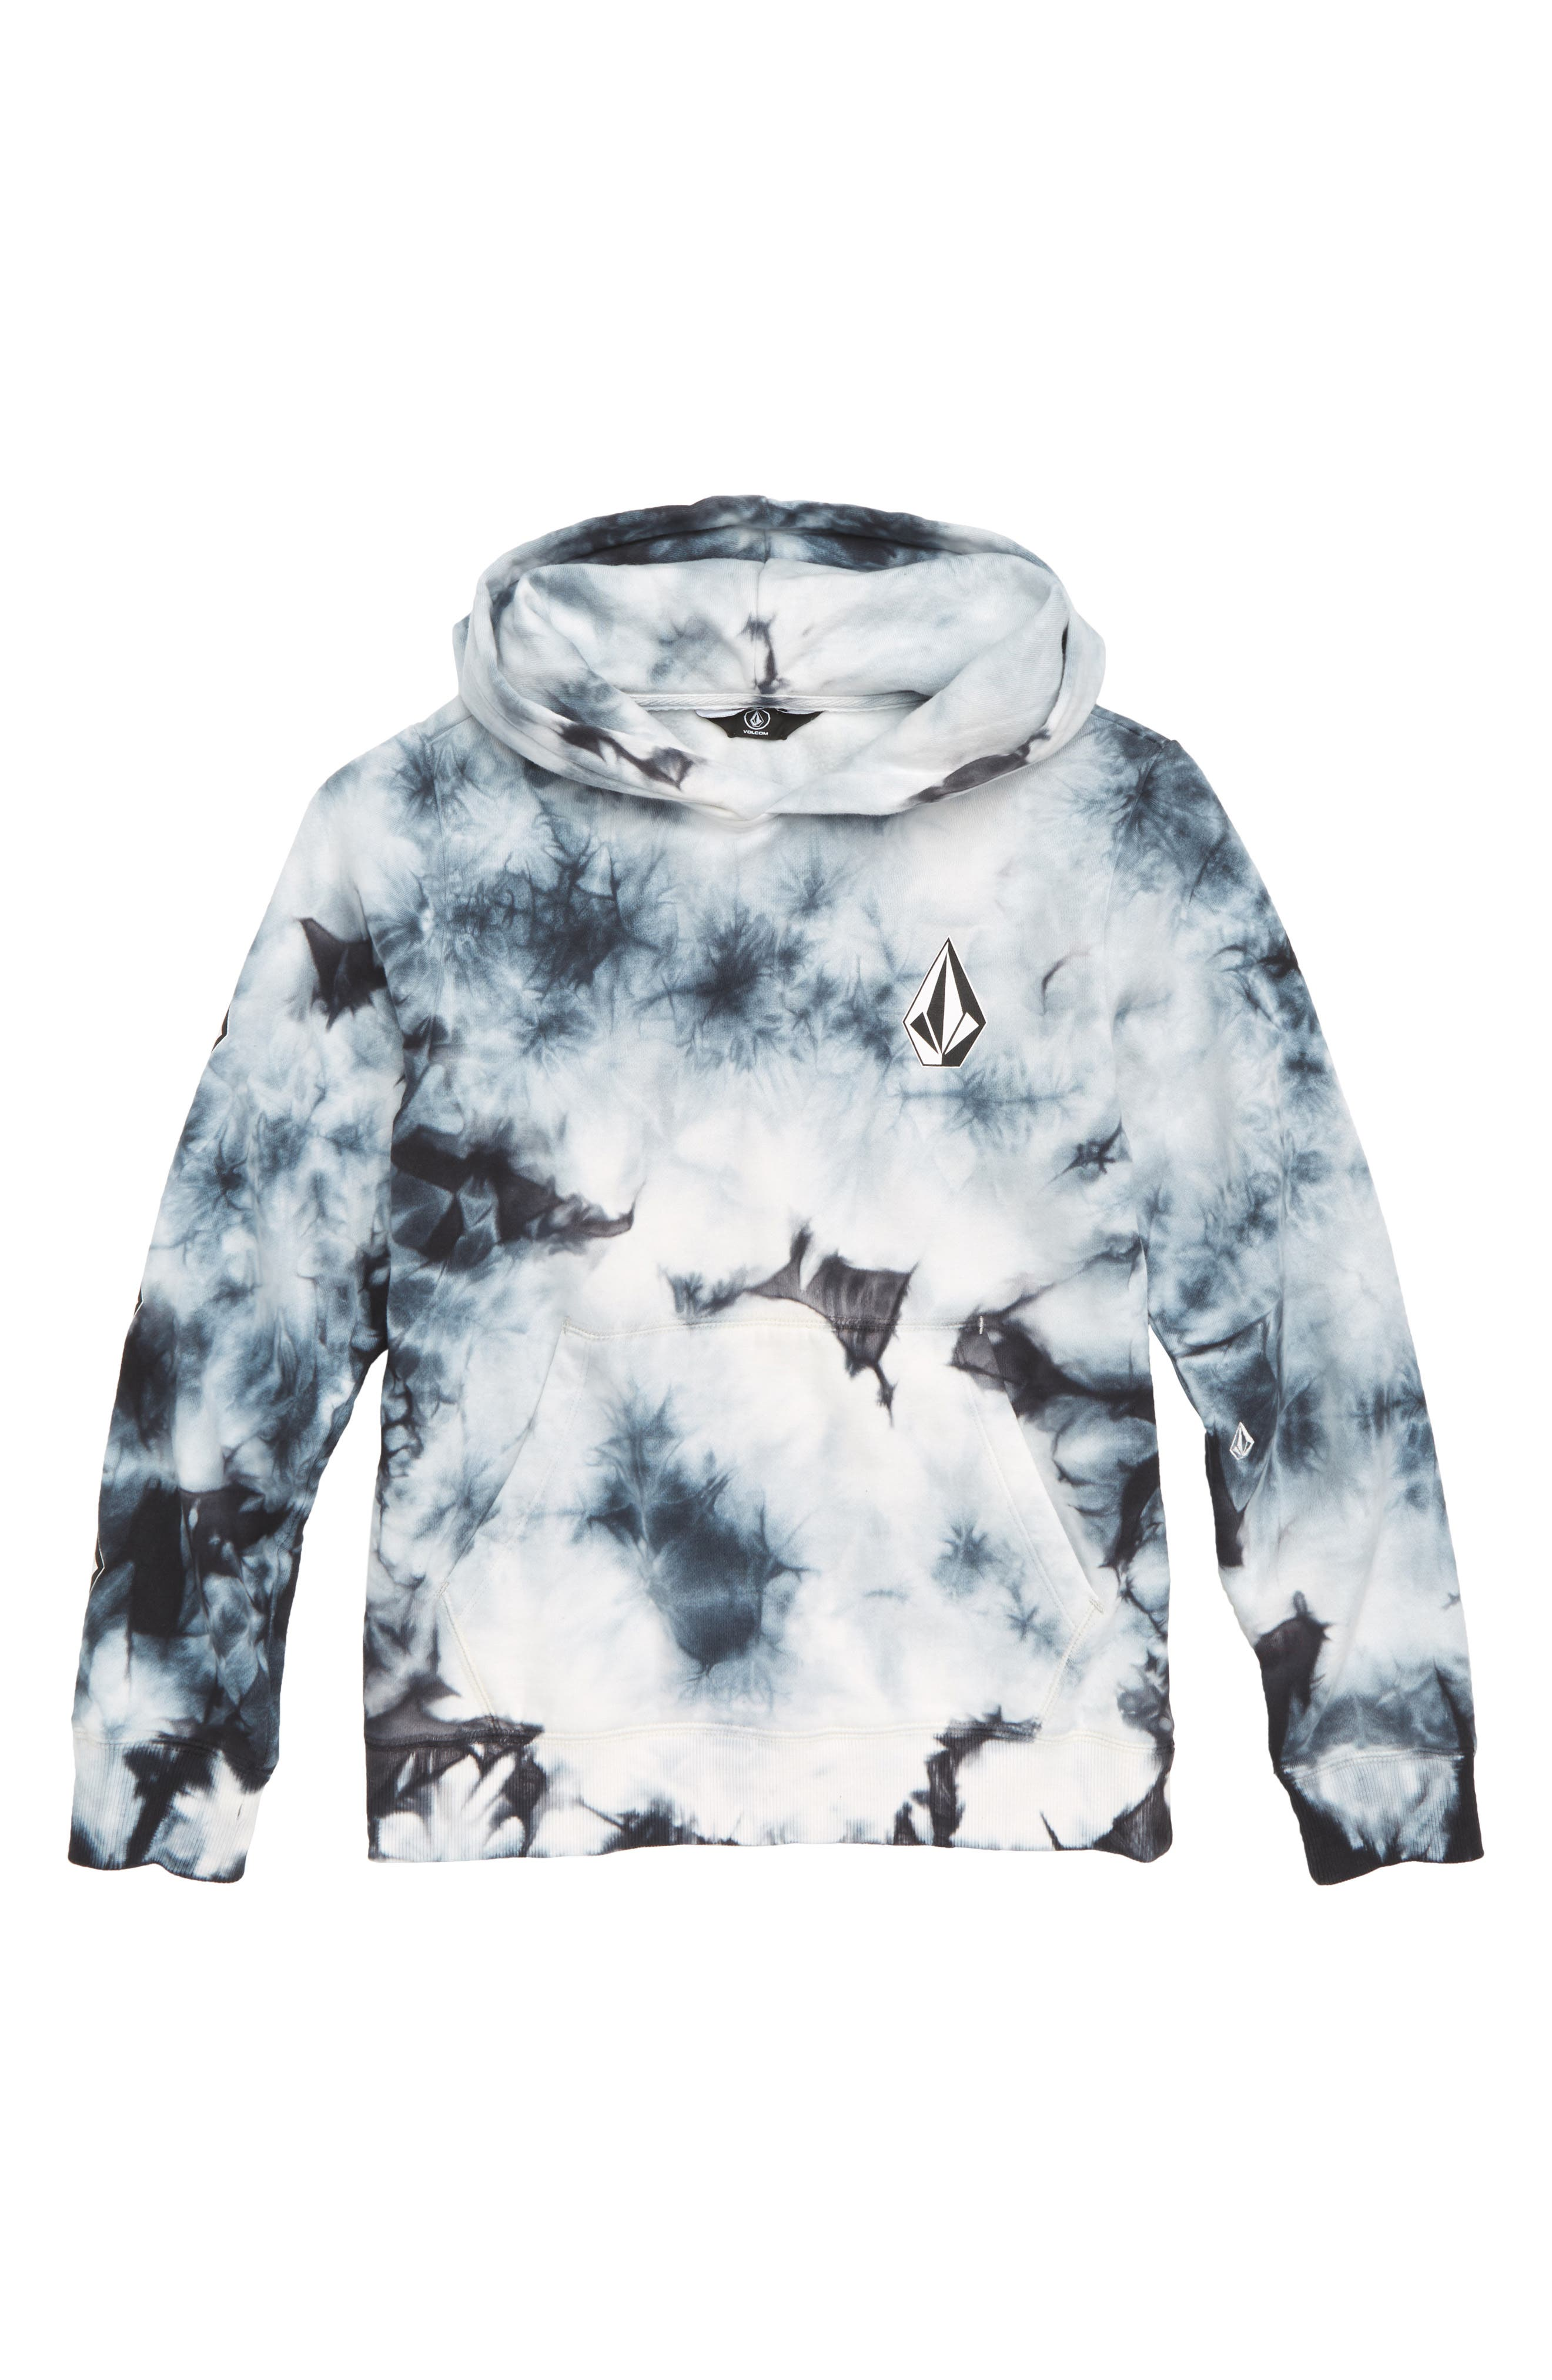 Deadly Stones Tie Dye Hoodie,                             Main thumbnail 1, color,                             038